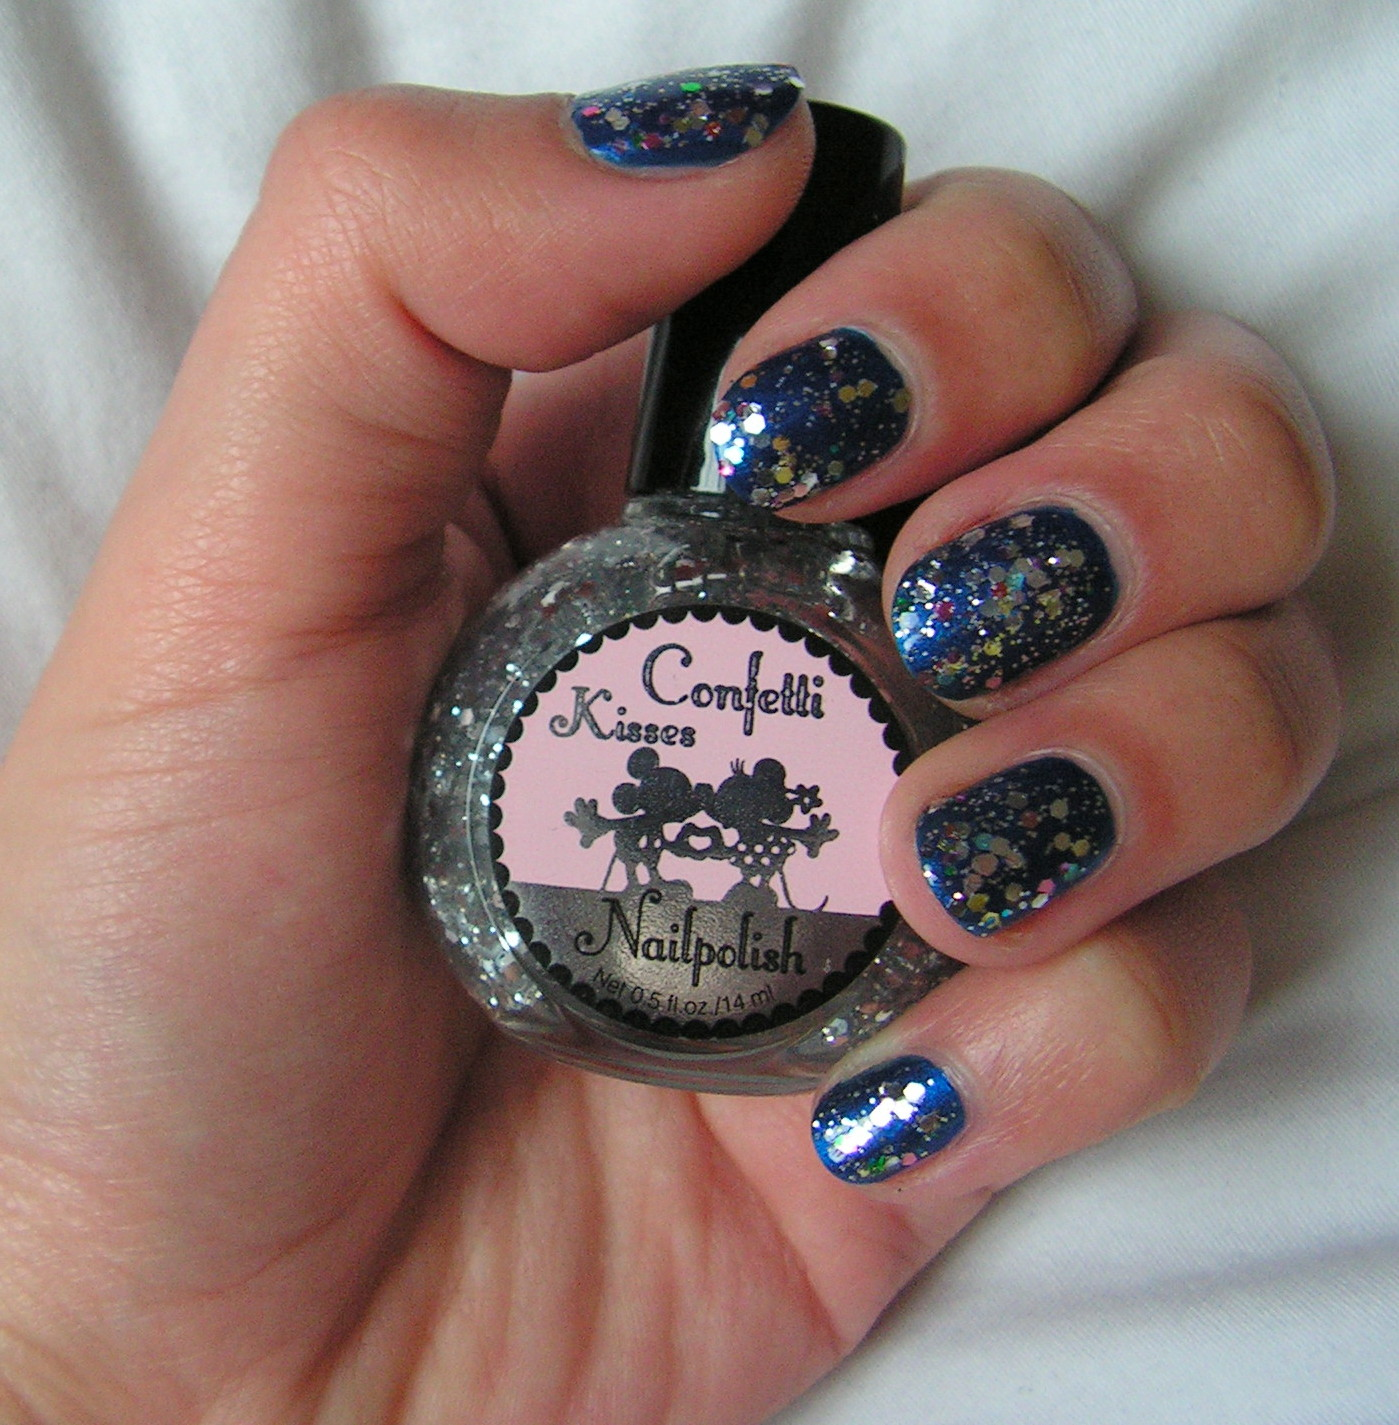 Keeping Up With The Kelly: NOTD: Happy New Year nails